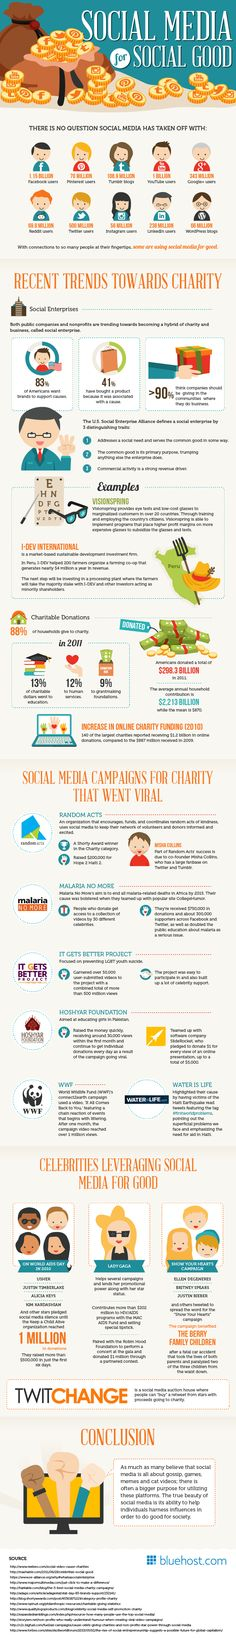 #SocialMedia for Social Good #INFOGRAPHIC http://fw.to/i7FPx0J